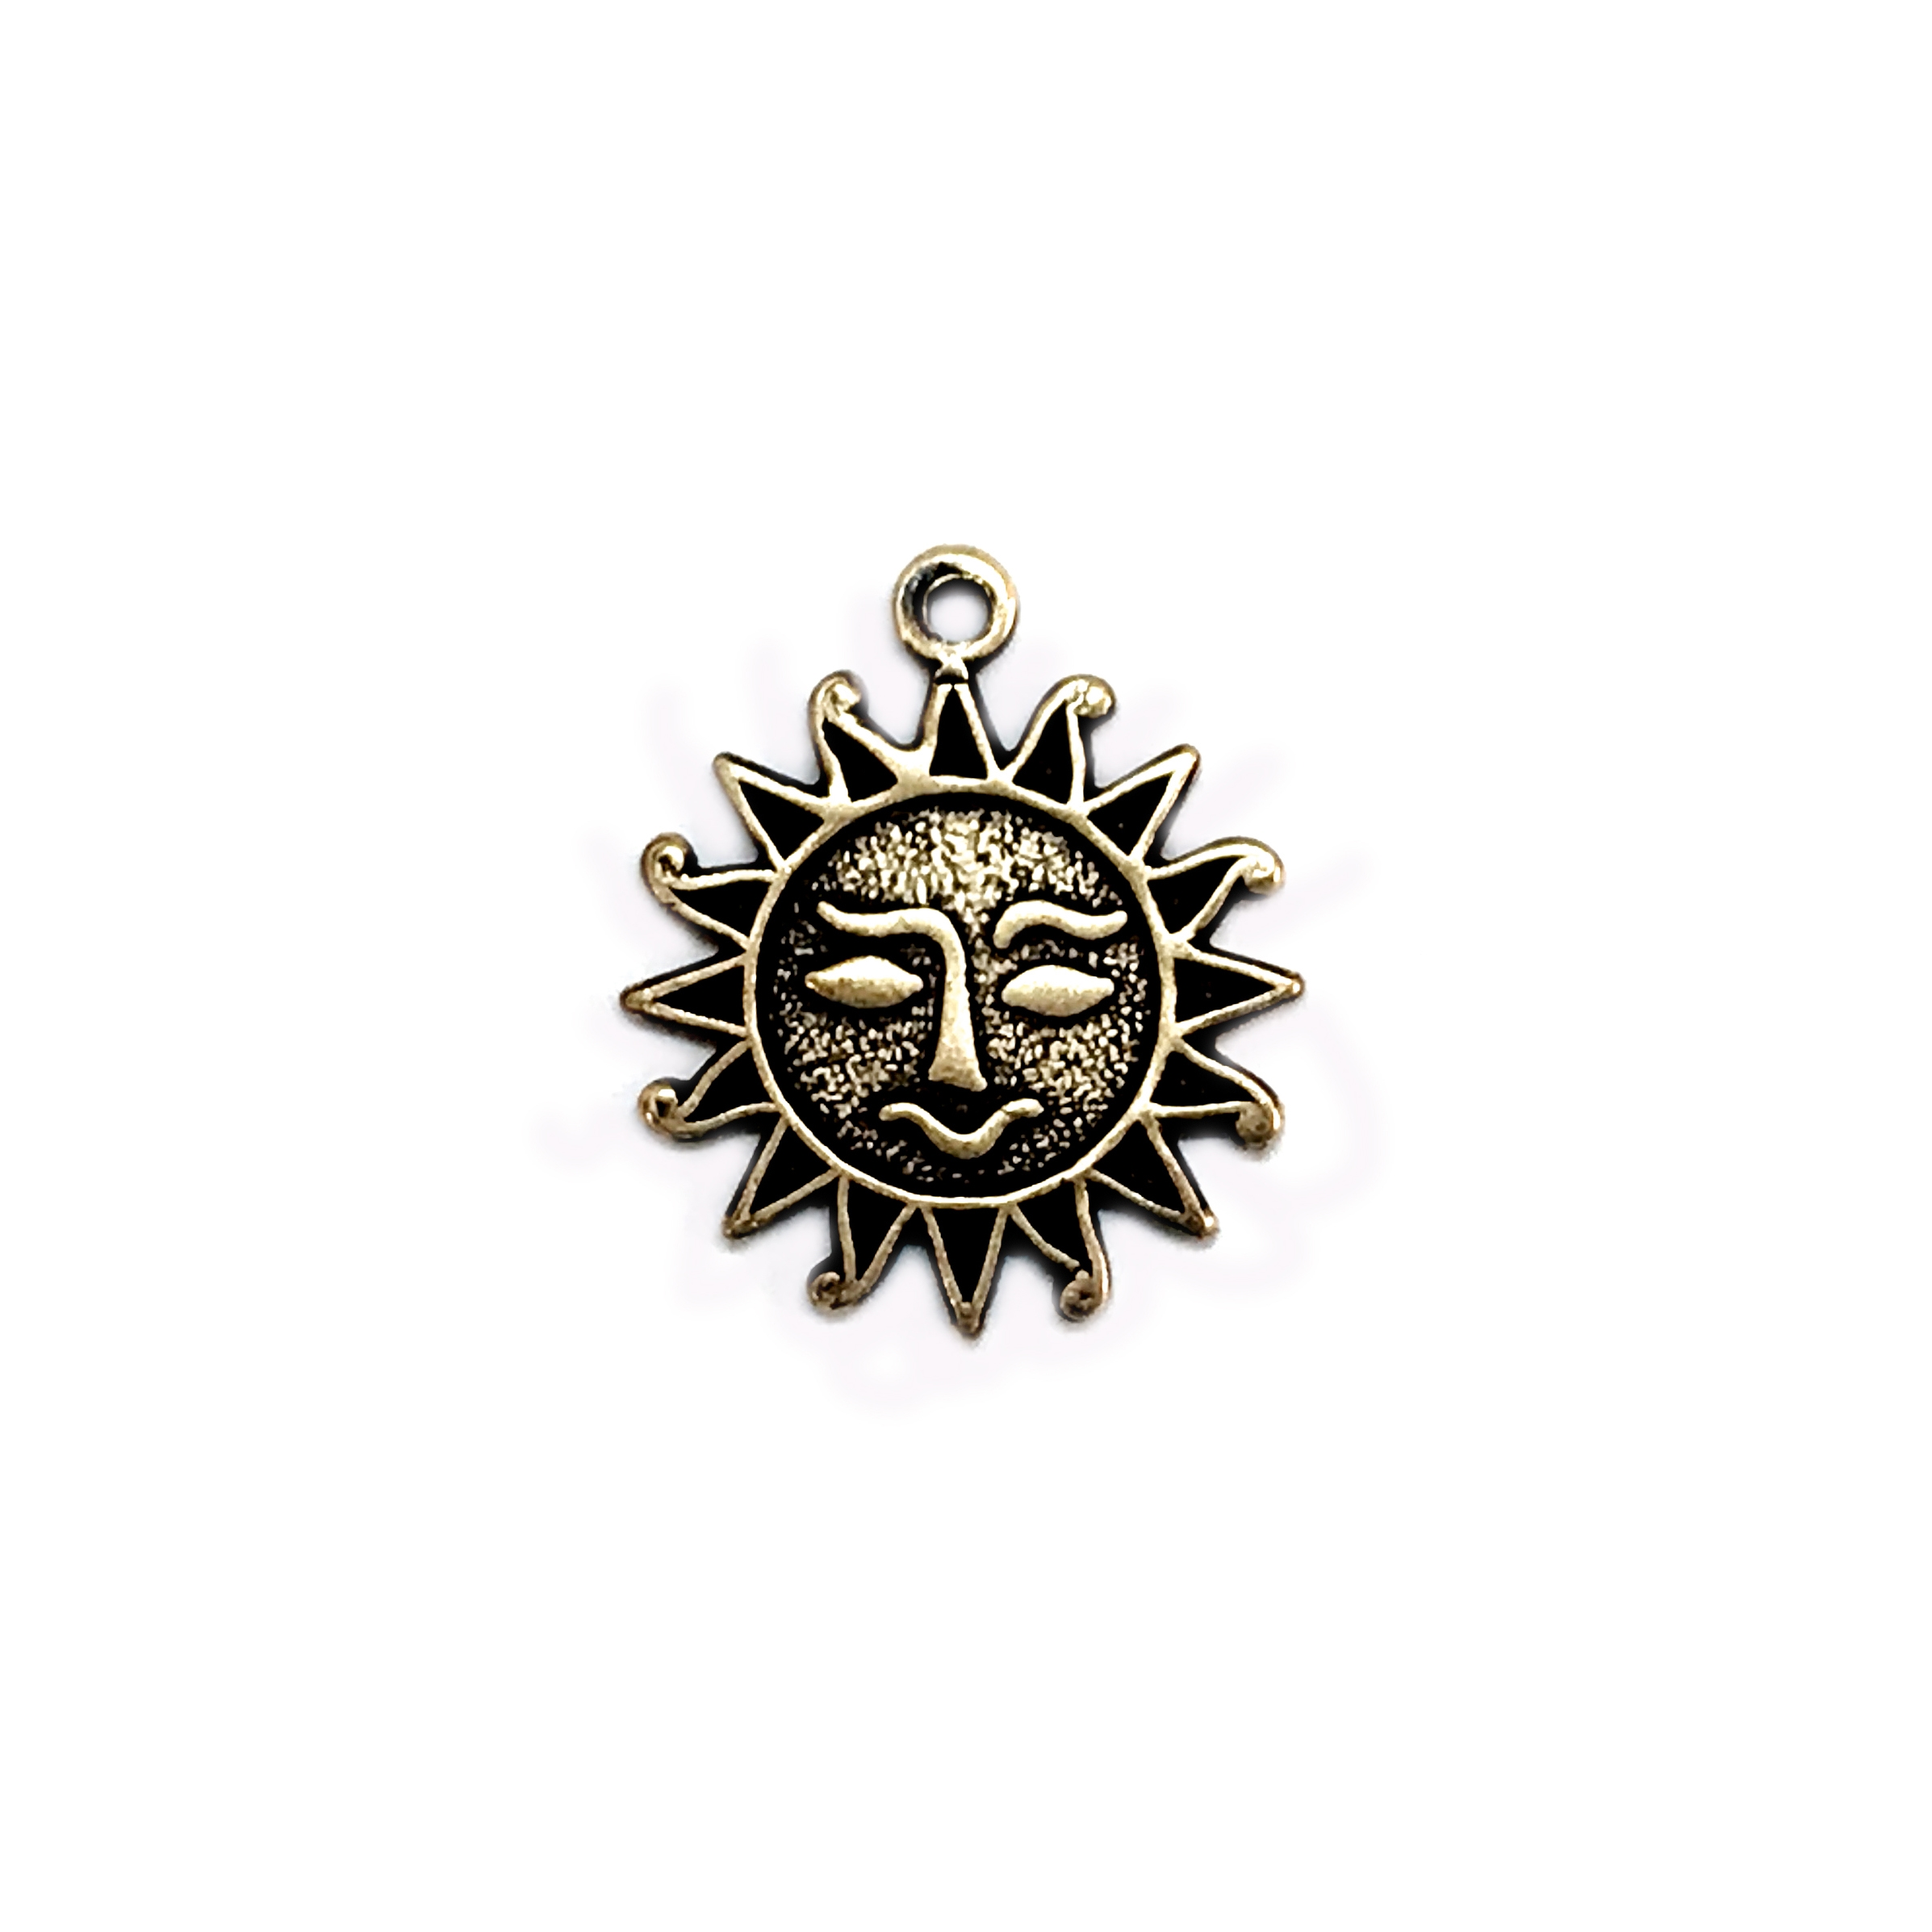 sun face stampings, rusted iron, brass sun faces, 16mm, antique brass, us made, nickel free, B'sue Boutiques, jewelry making, vintage supplies, jewelry supplies, jewelry findings, 04473